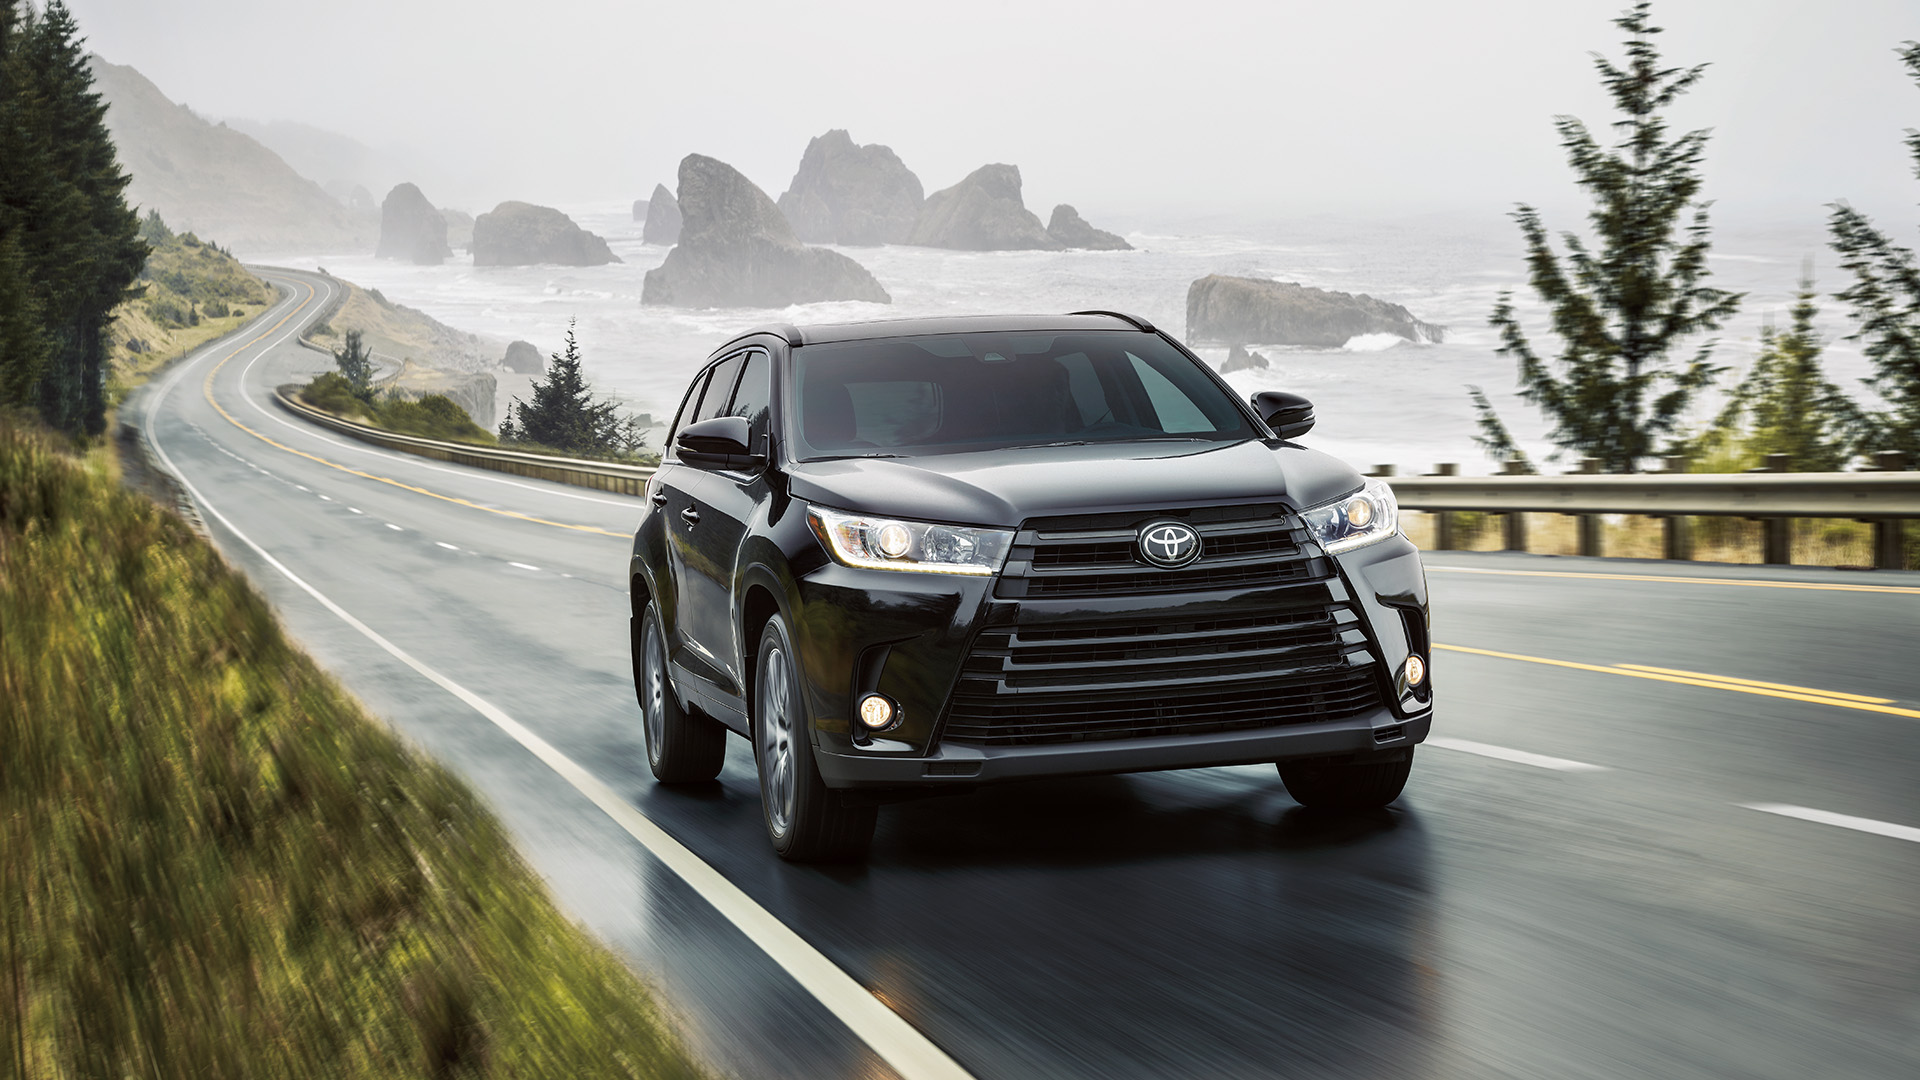 2018 Toyota Highlander for Sale in O'Fallon, IL - Newbold ...